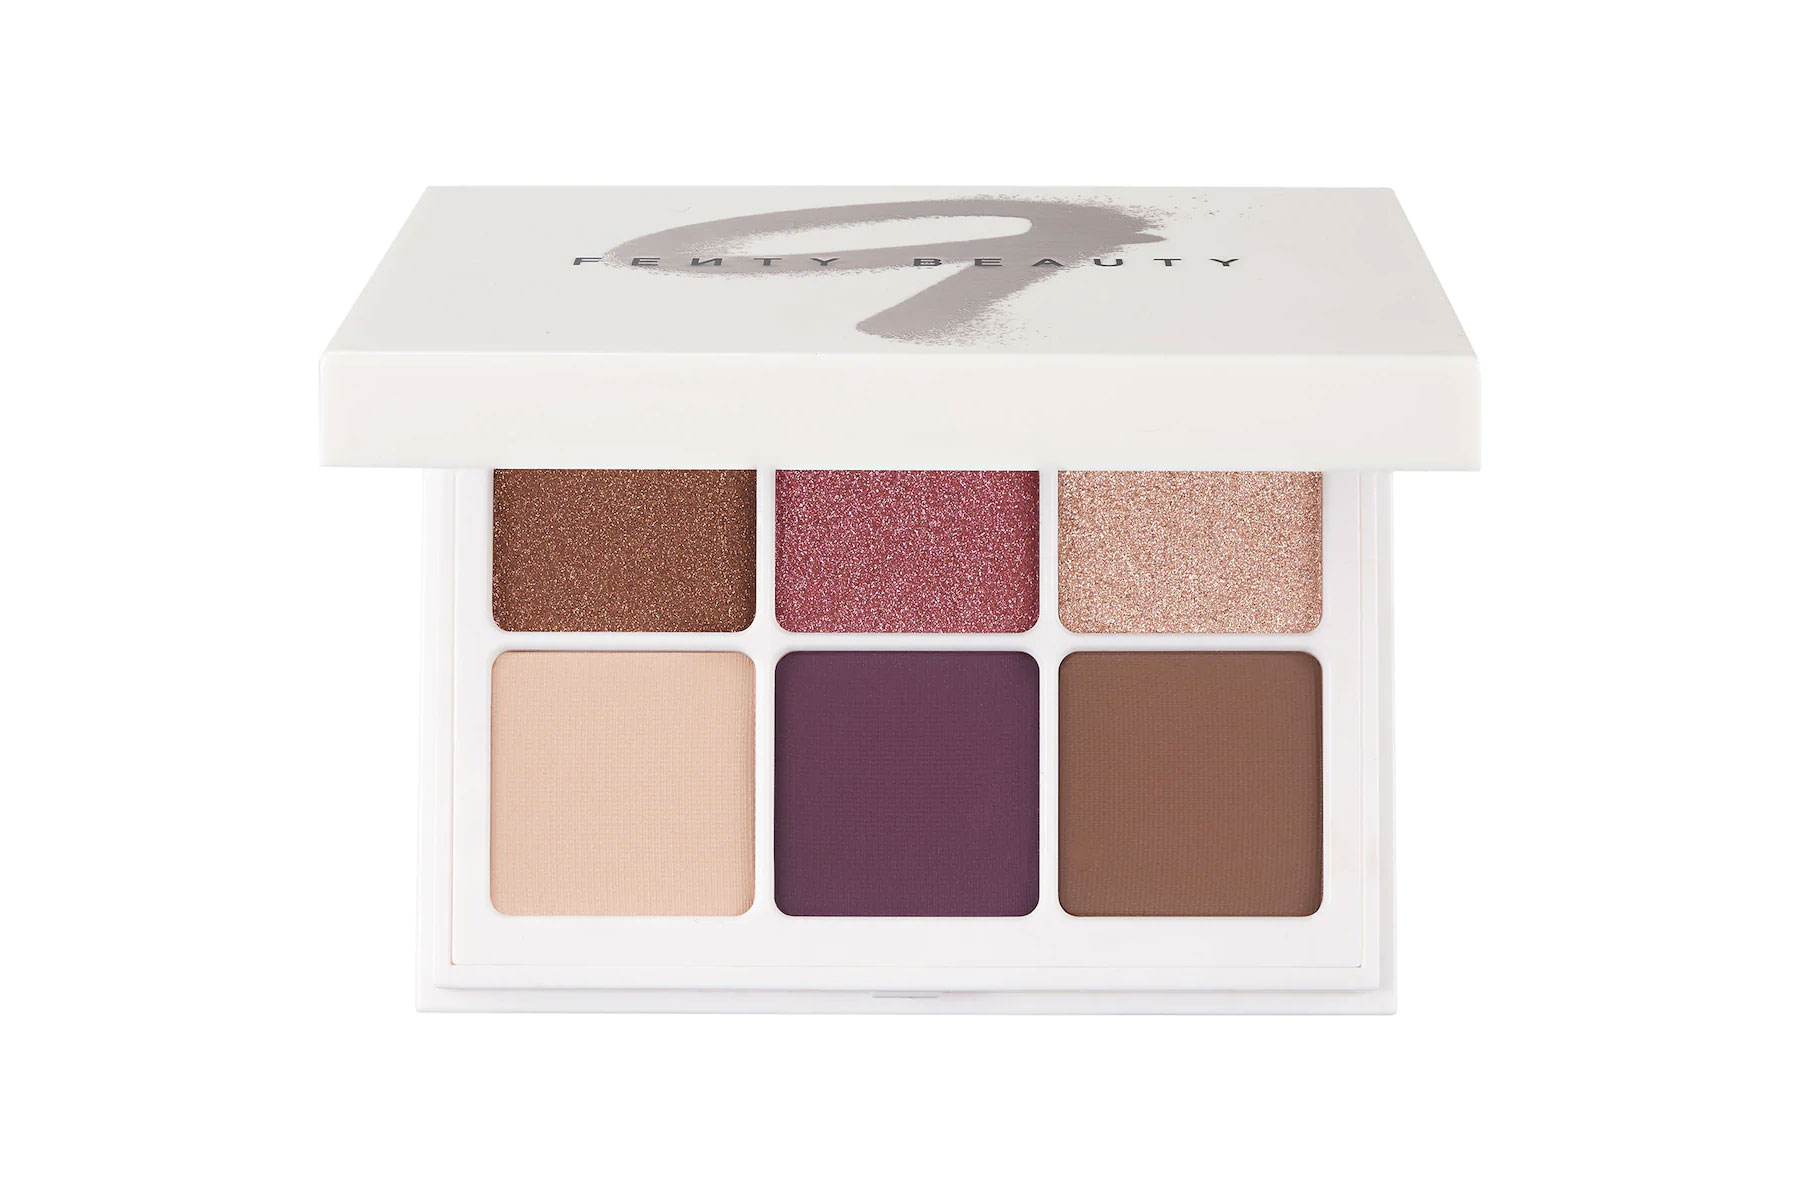 Purple, brown, and pink eyeshadow palette